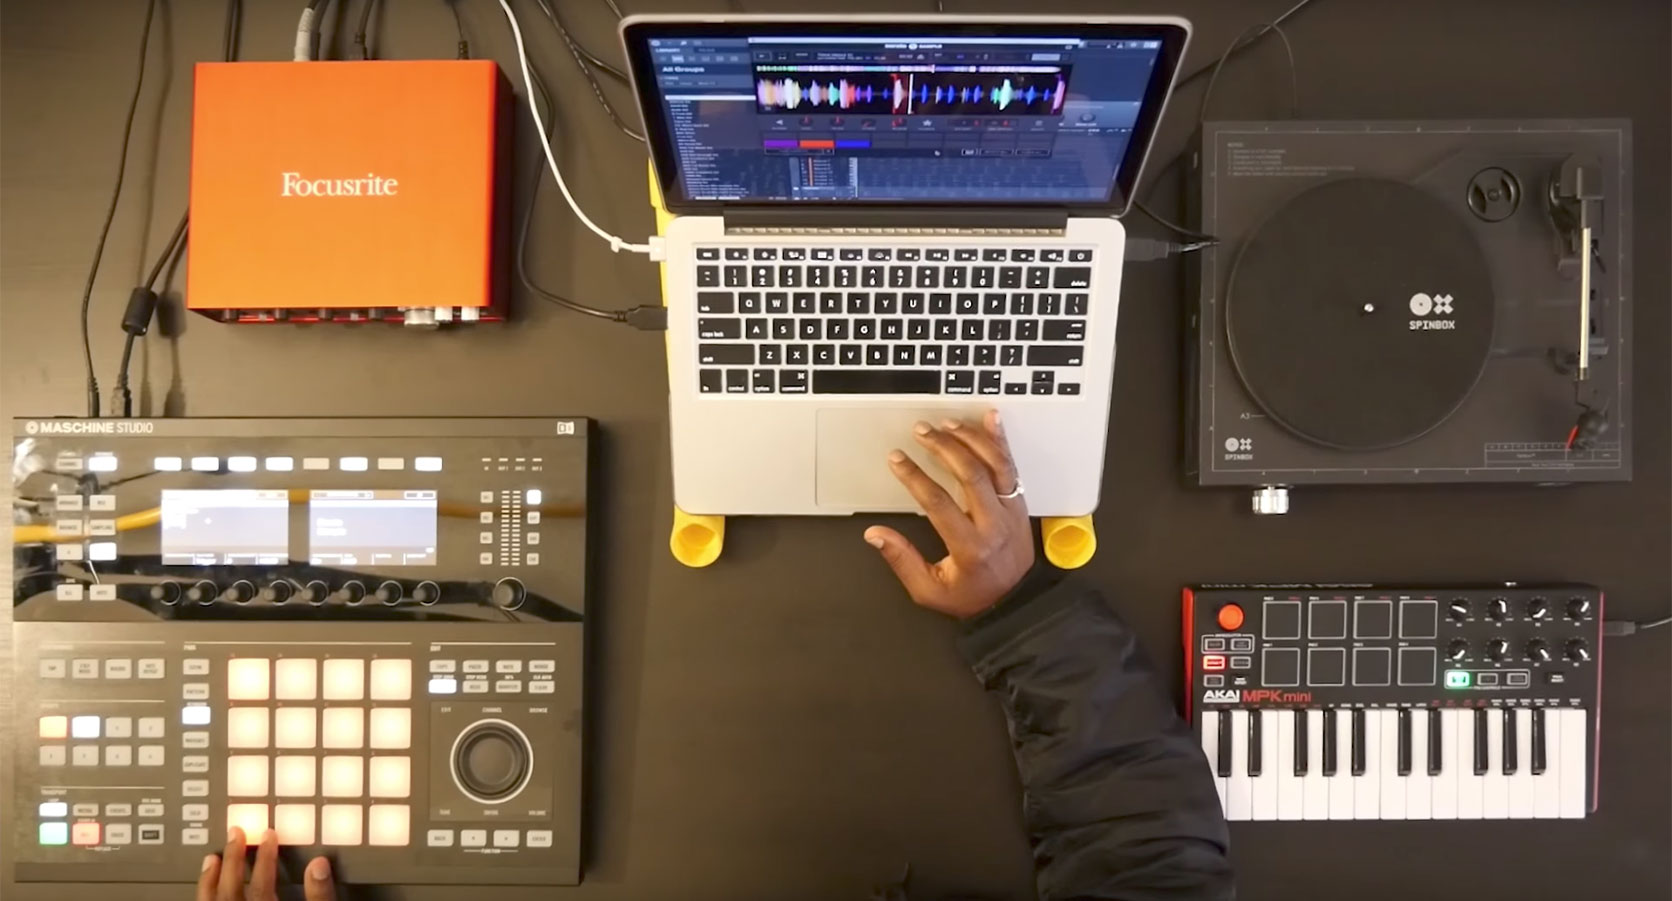 6. How to use Maschine hardware with Serato Sample